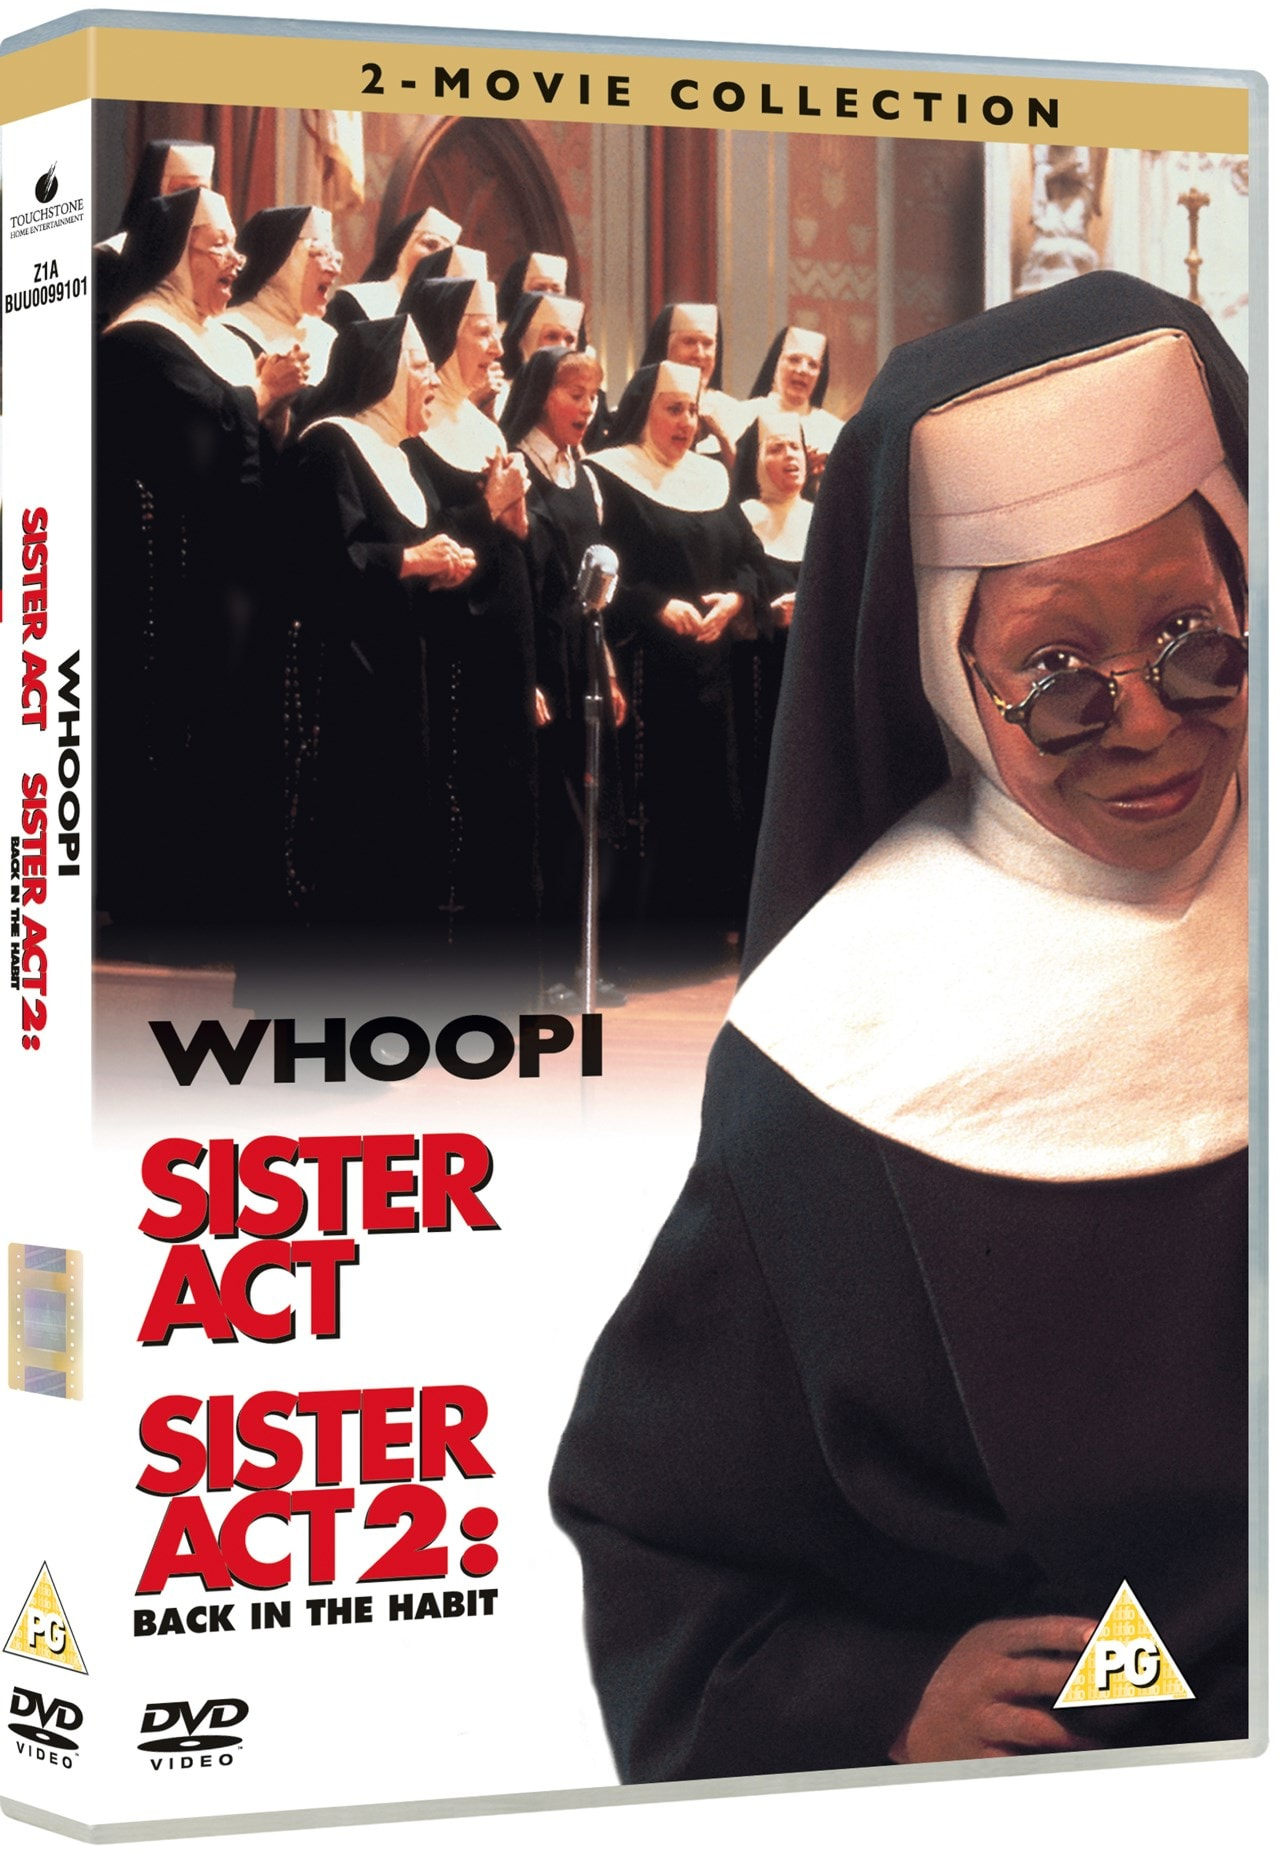 Sister Act/Sister Act 2 - Back in the Habit - 2